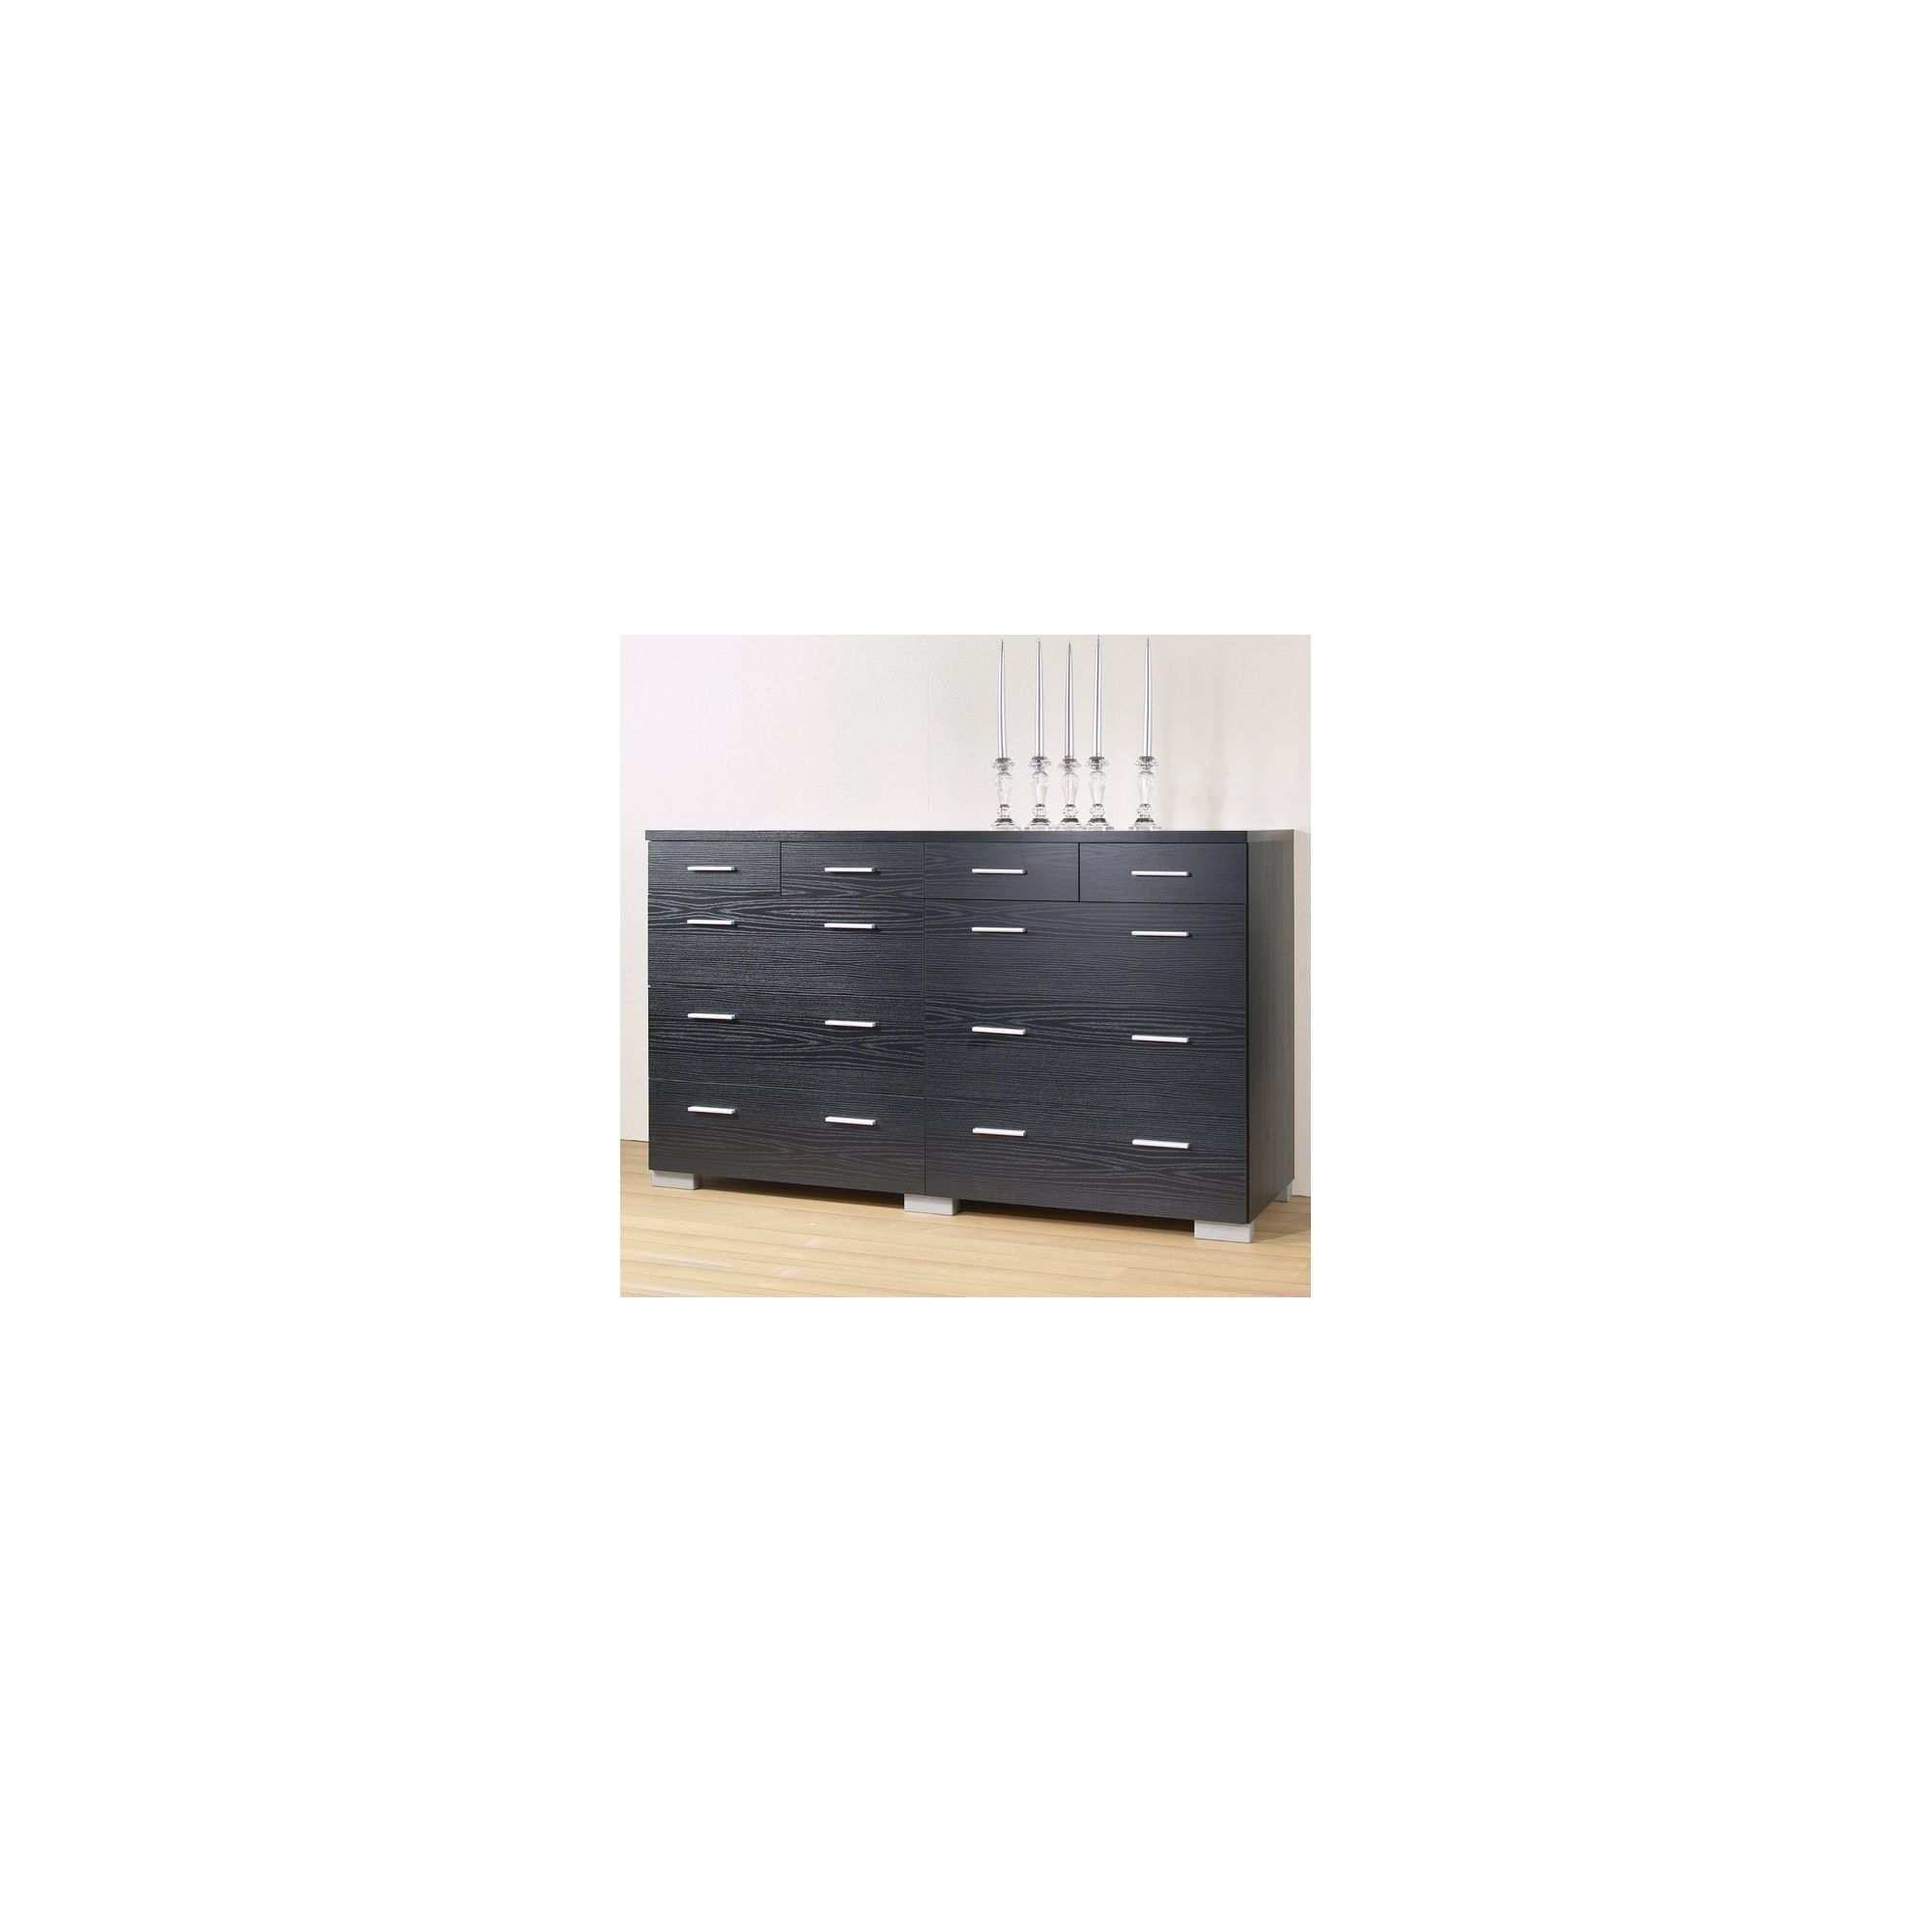 Tvilum Puls 10 Drawer Chest - Black Woodgrain at Tesco Direct